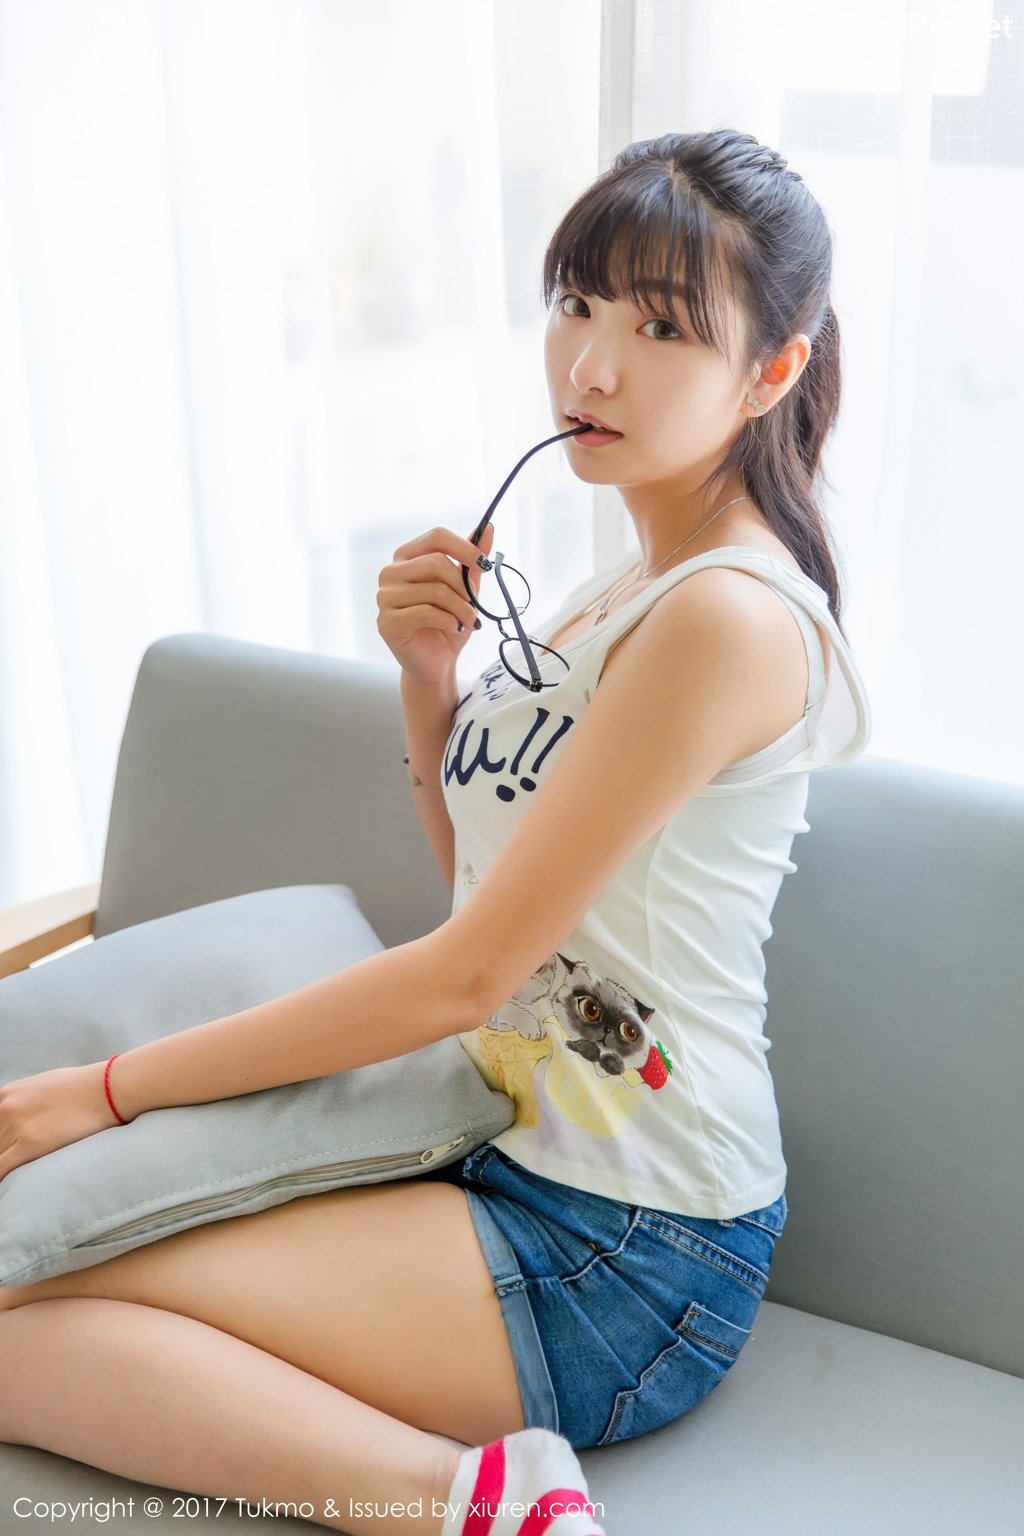 Image-Tukmo-Vol-095-Qiu-Qiu-Model-球球-You-Make-Me-Meow-TruePic.net- Picture-2